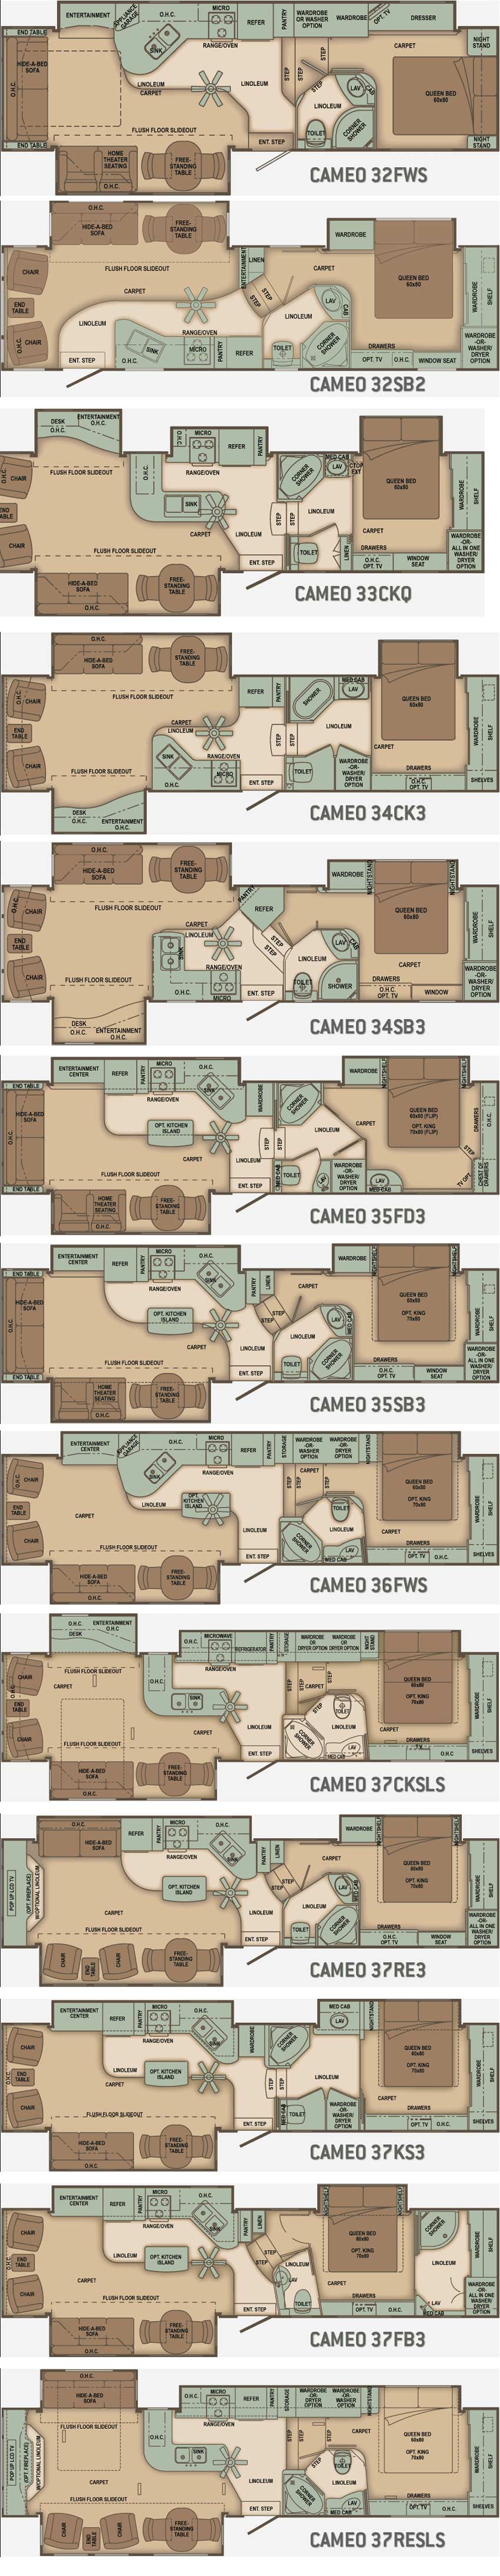 Carriage cameo fifth wheel floorplans large picture for Carriage rv floor plans